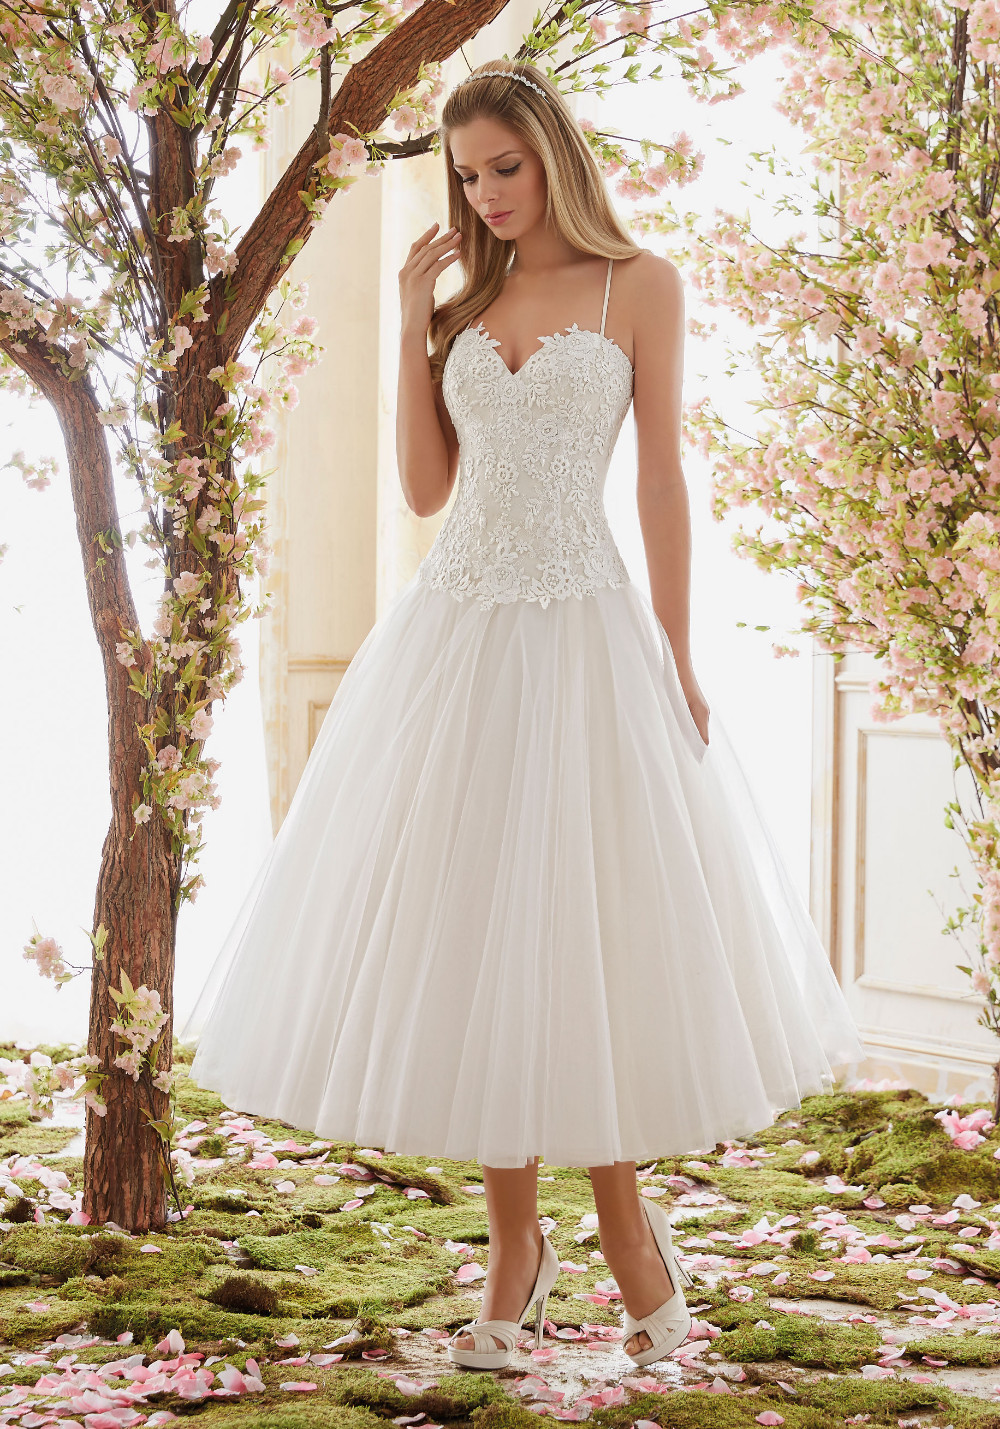 4b707b396cef2 Clear Comfortable Tulle Sweet Wedding Dress 2017 Vintage 1950's White  Garden Style Bridal Gowns Mid Calf A Line Spaghetti Gowns-in Wedding  Dresses ...